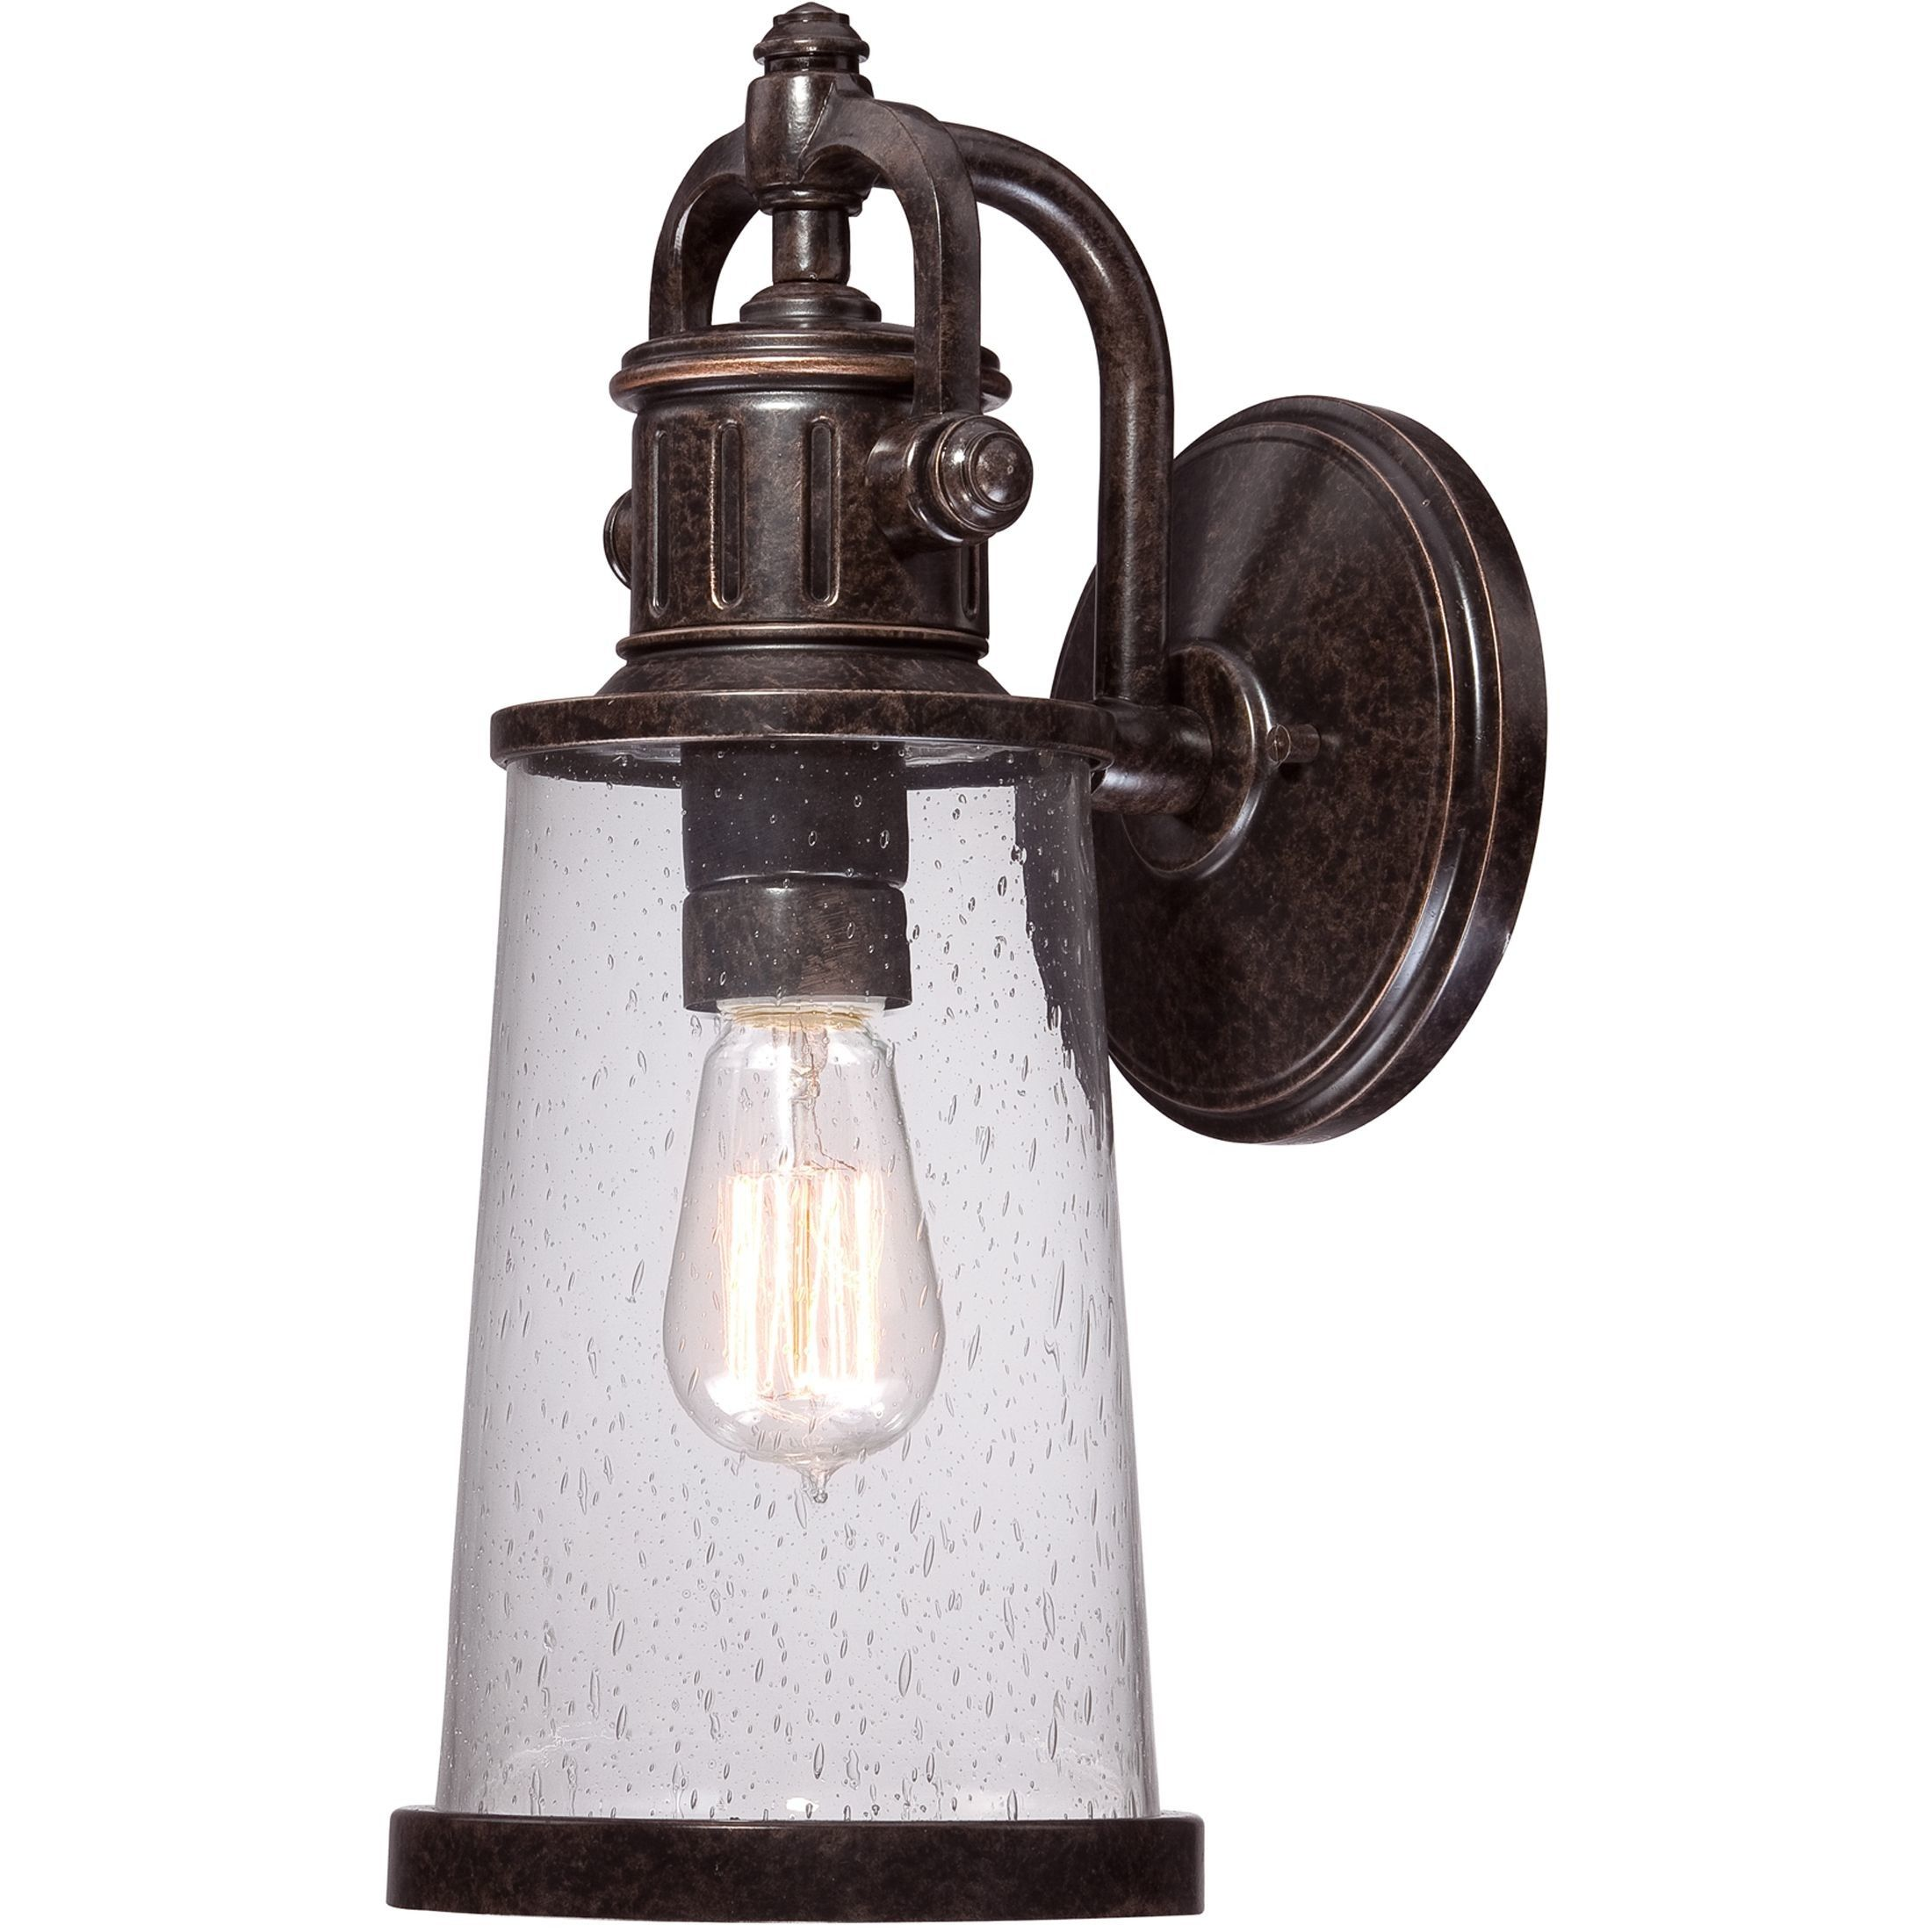 This Fixture Gives The Exterior Of Your Home Both Beauty